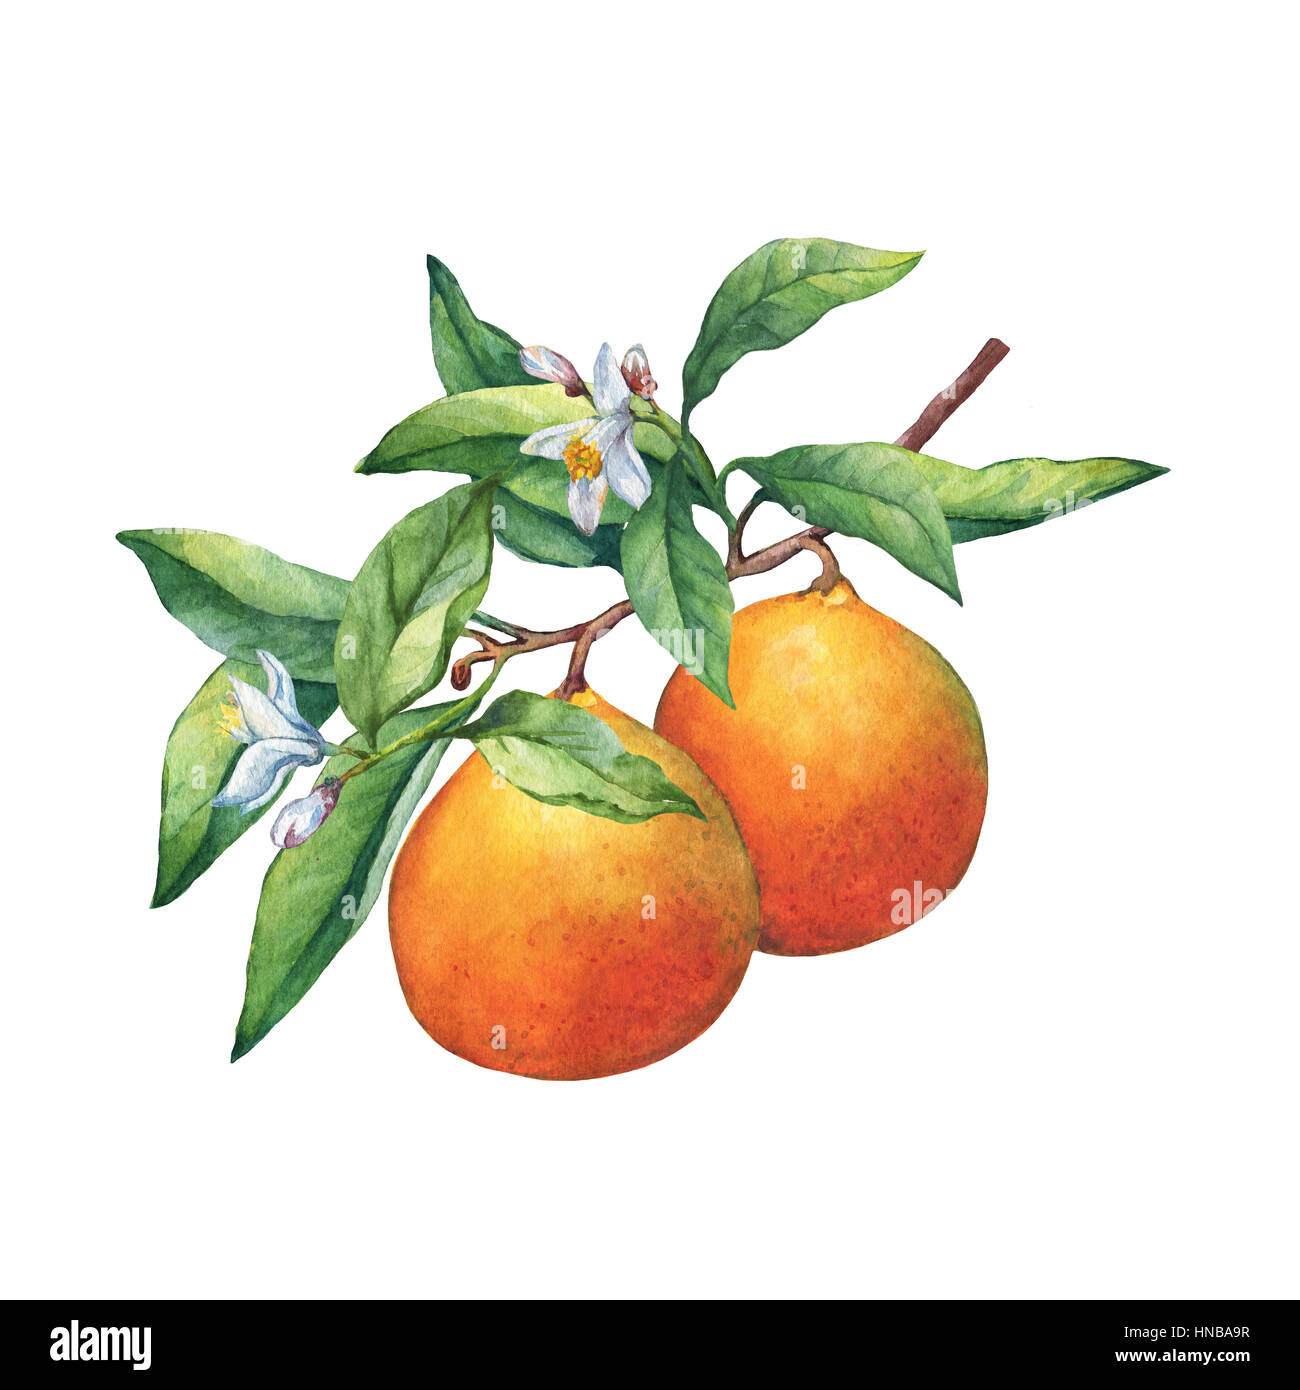 Fresh Citrus Fruit Oranges On A Branch With Fruits Green Leaves Stock Photo Alamy